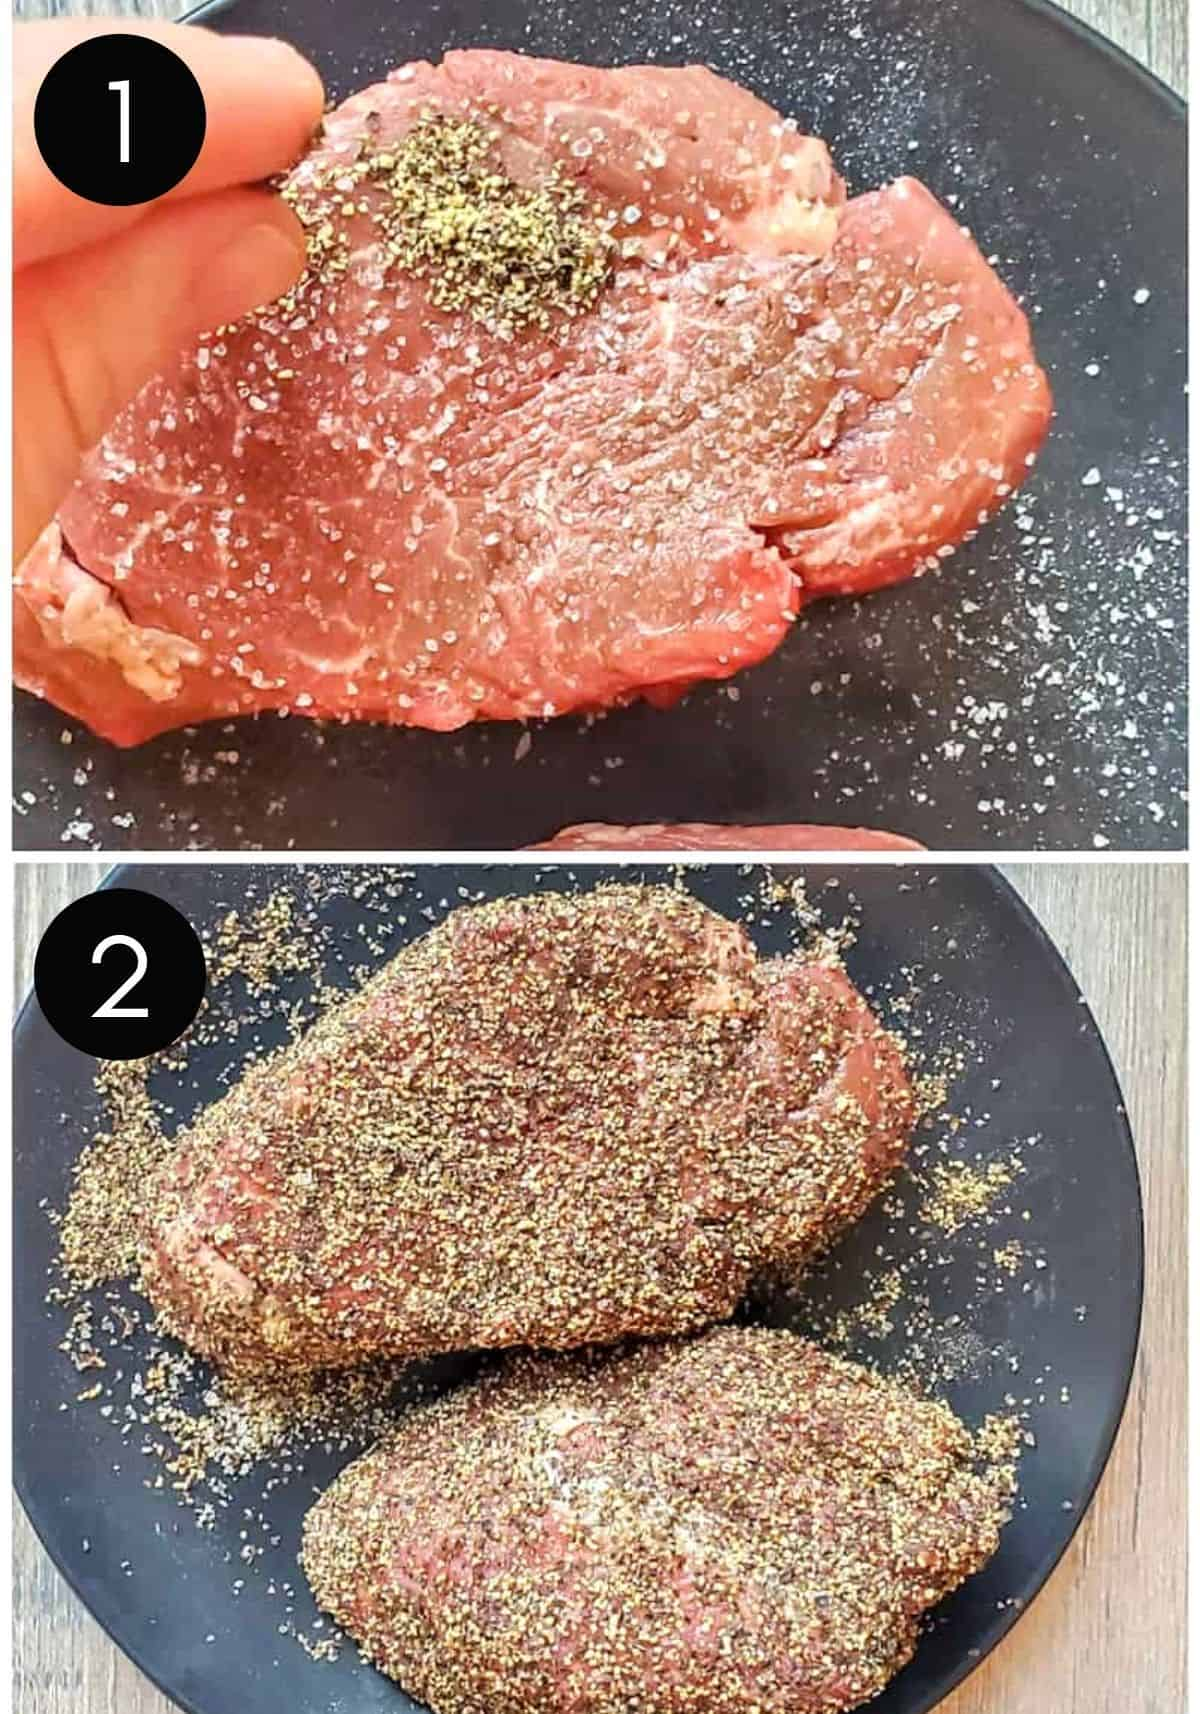 Two images showing steak being coated in pepper.